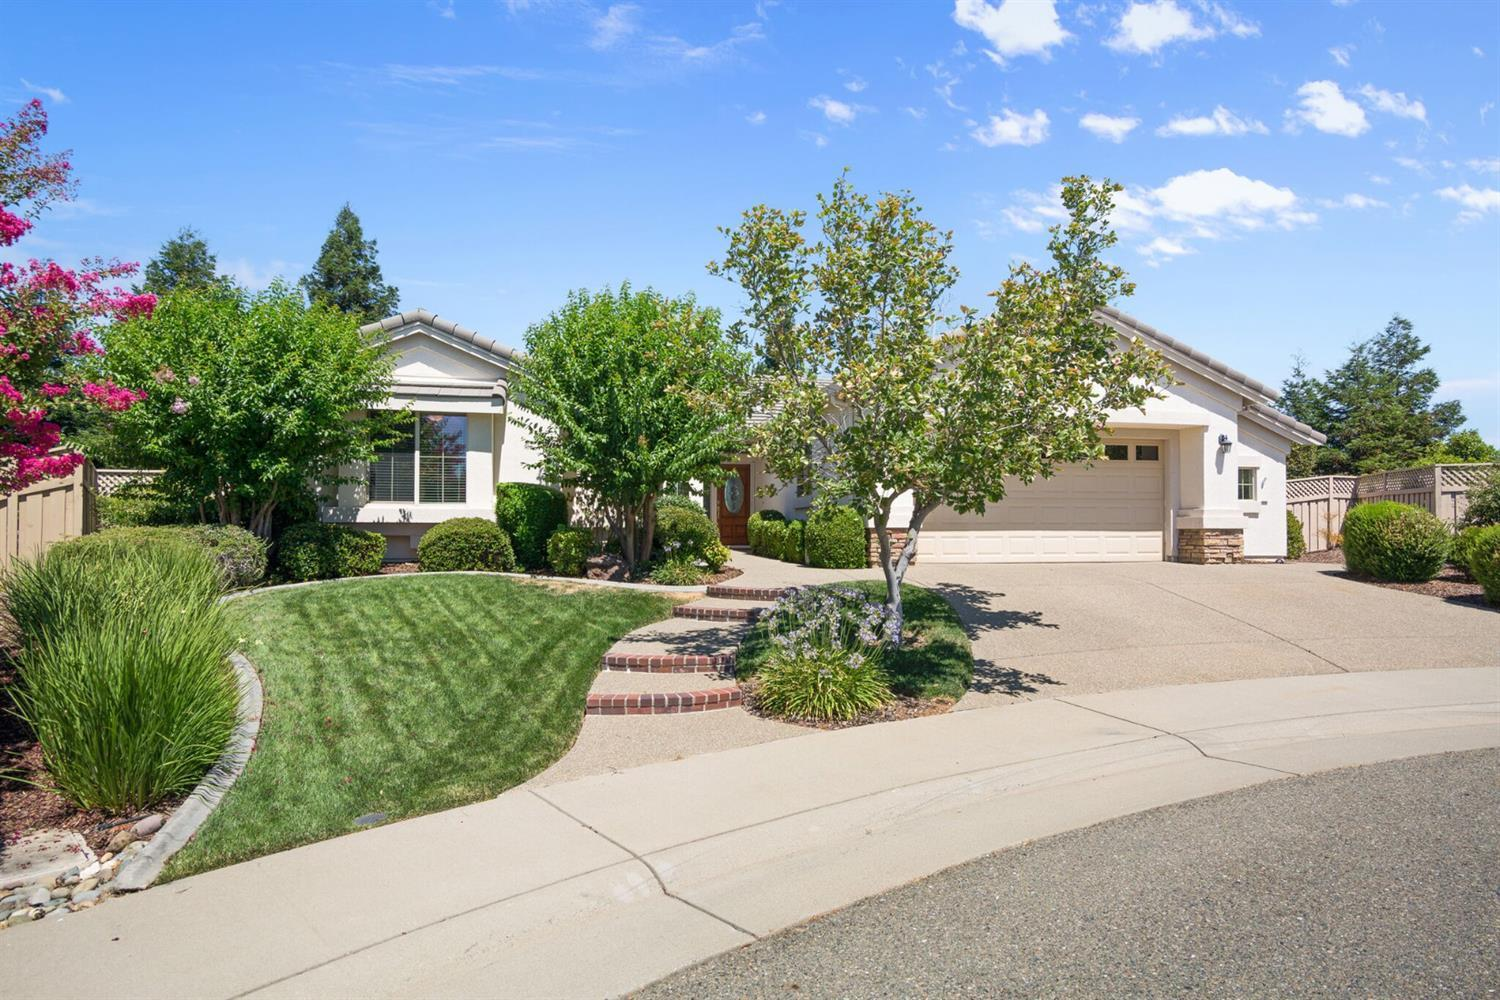 Homes For Sale In Sun City Lincoln Ca